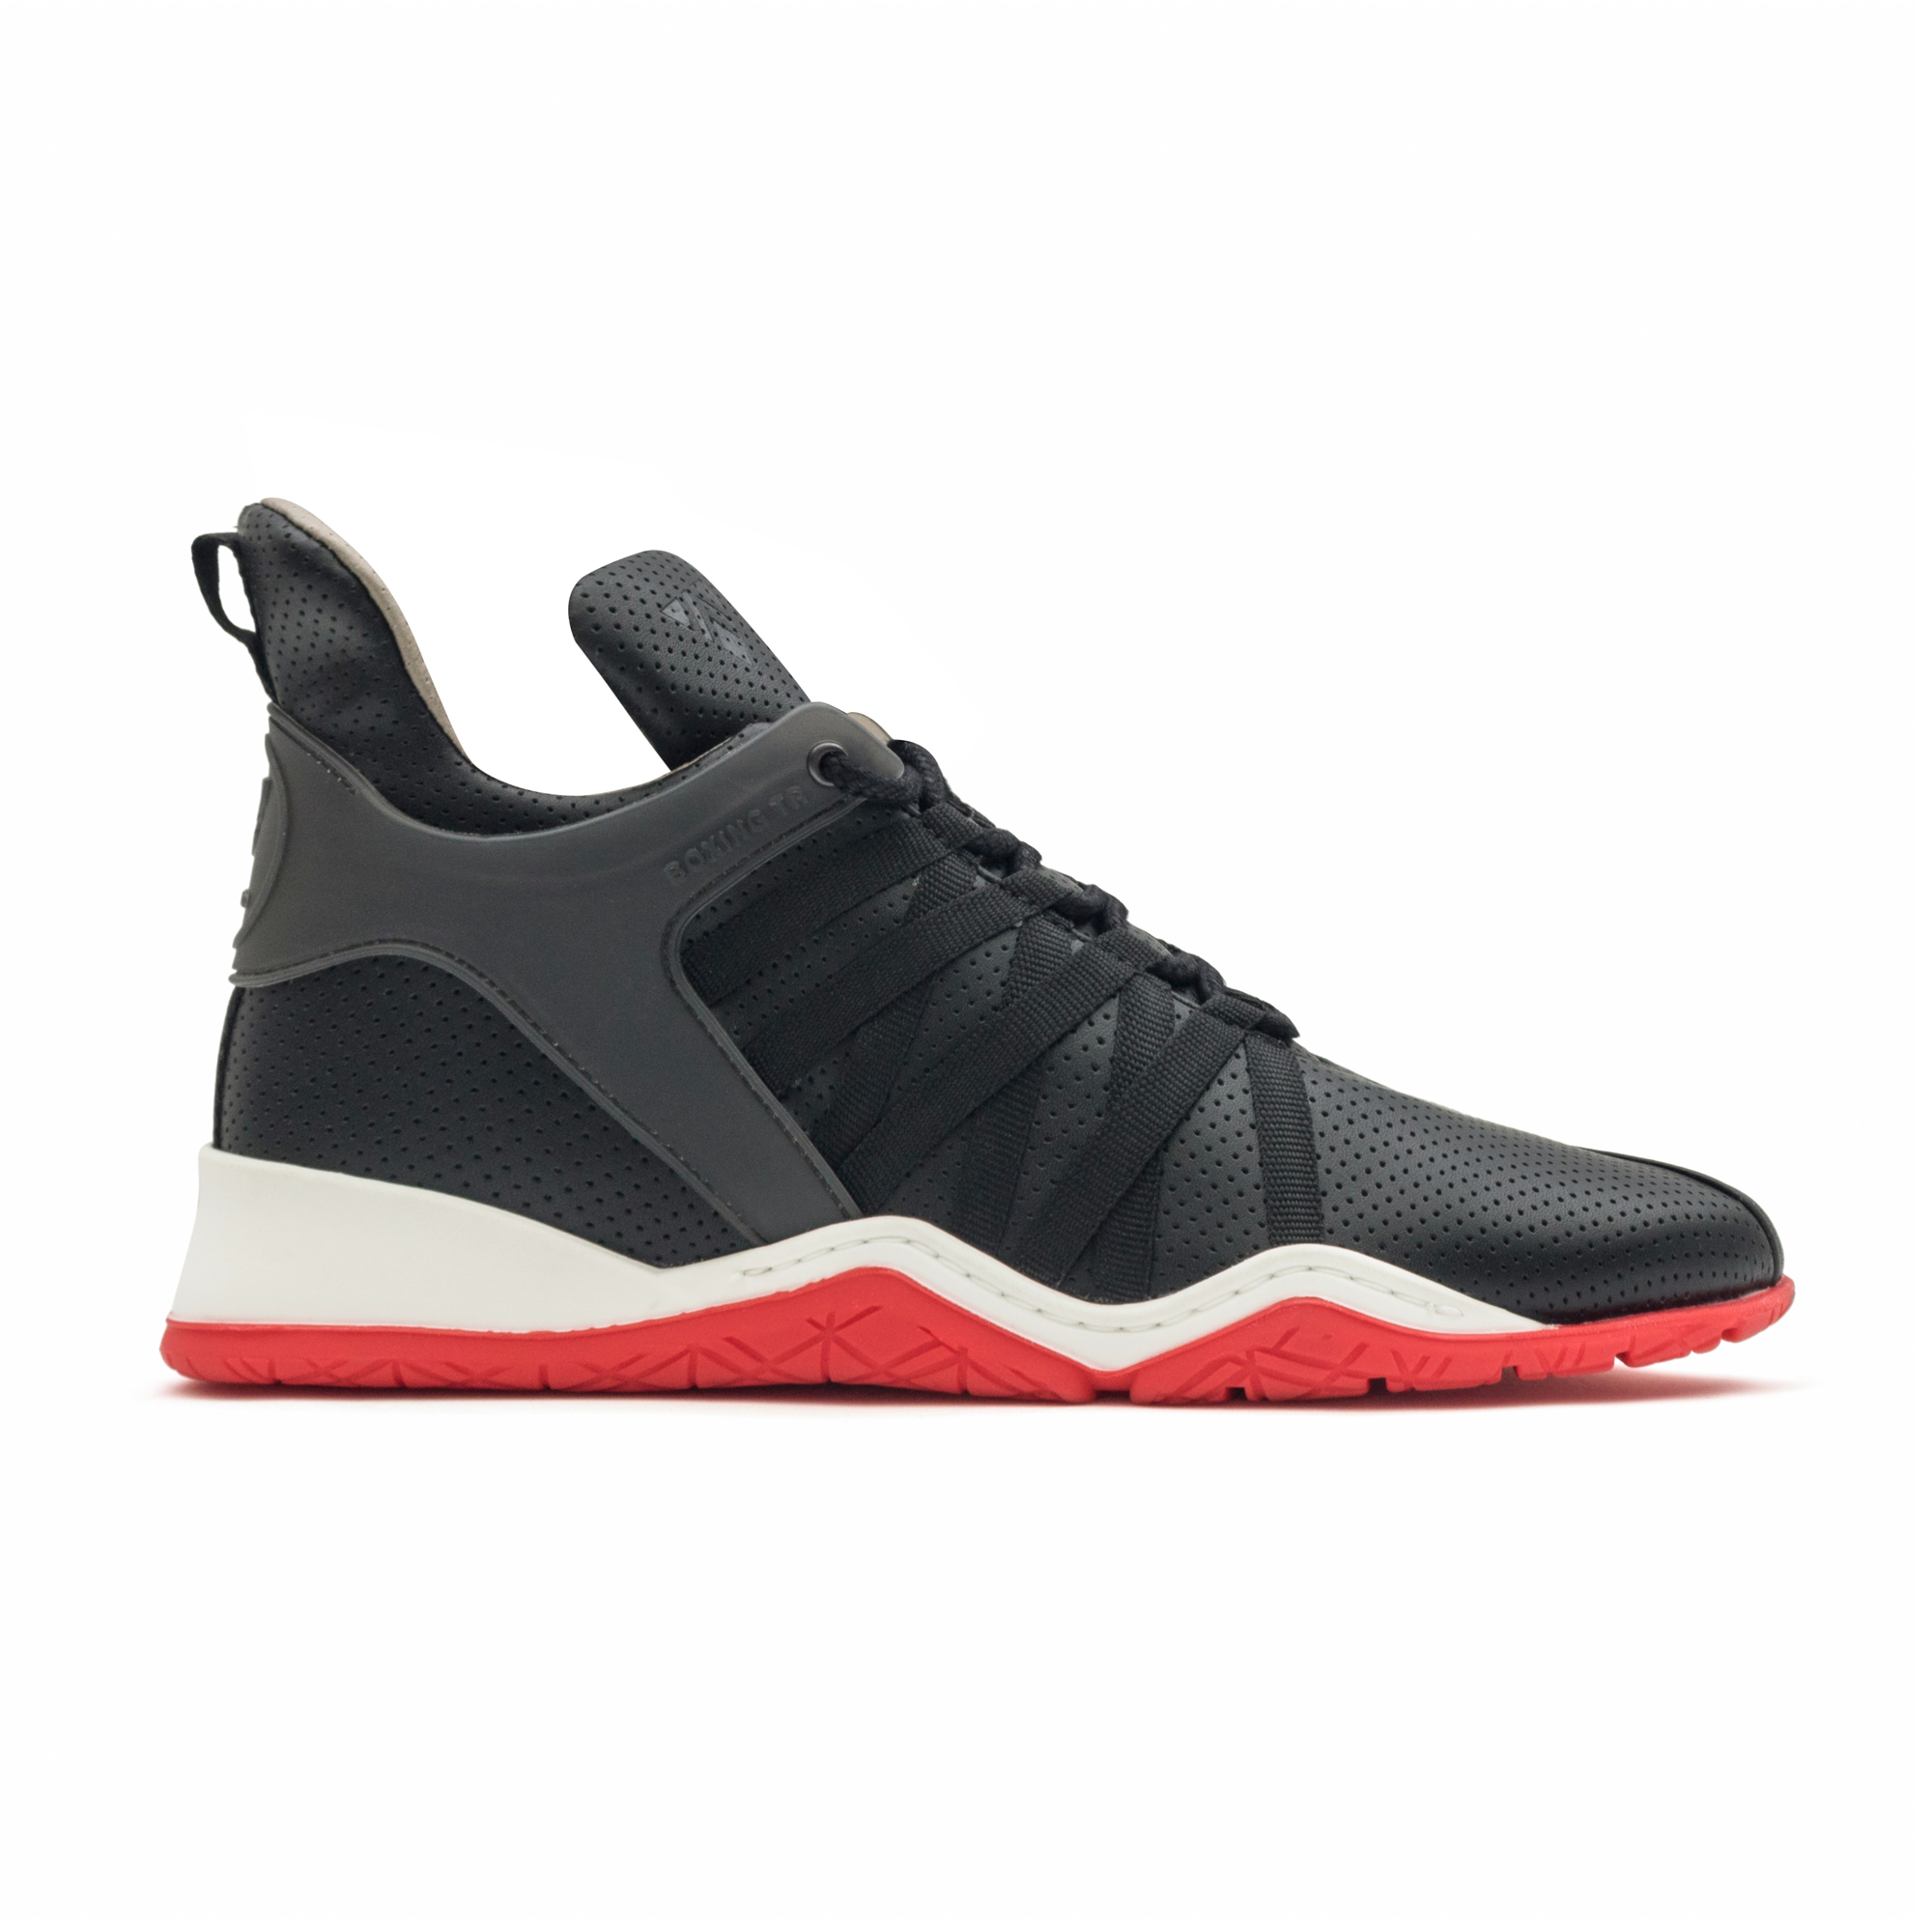 Vobyo BX TR Sneaker in Vegan Black/Red by Vobyo